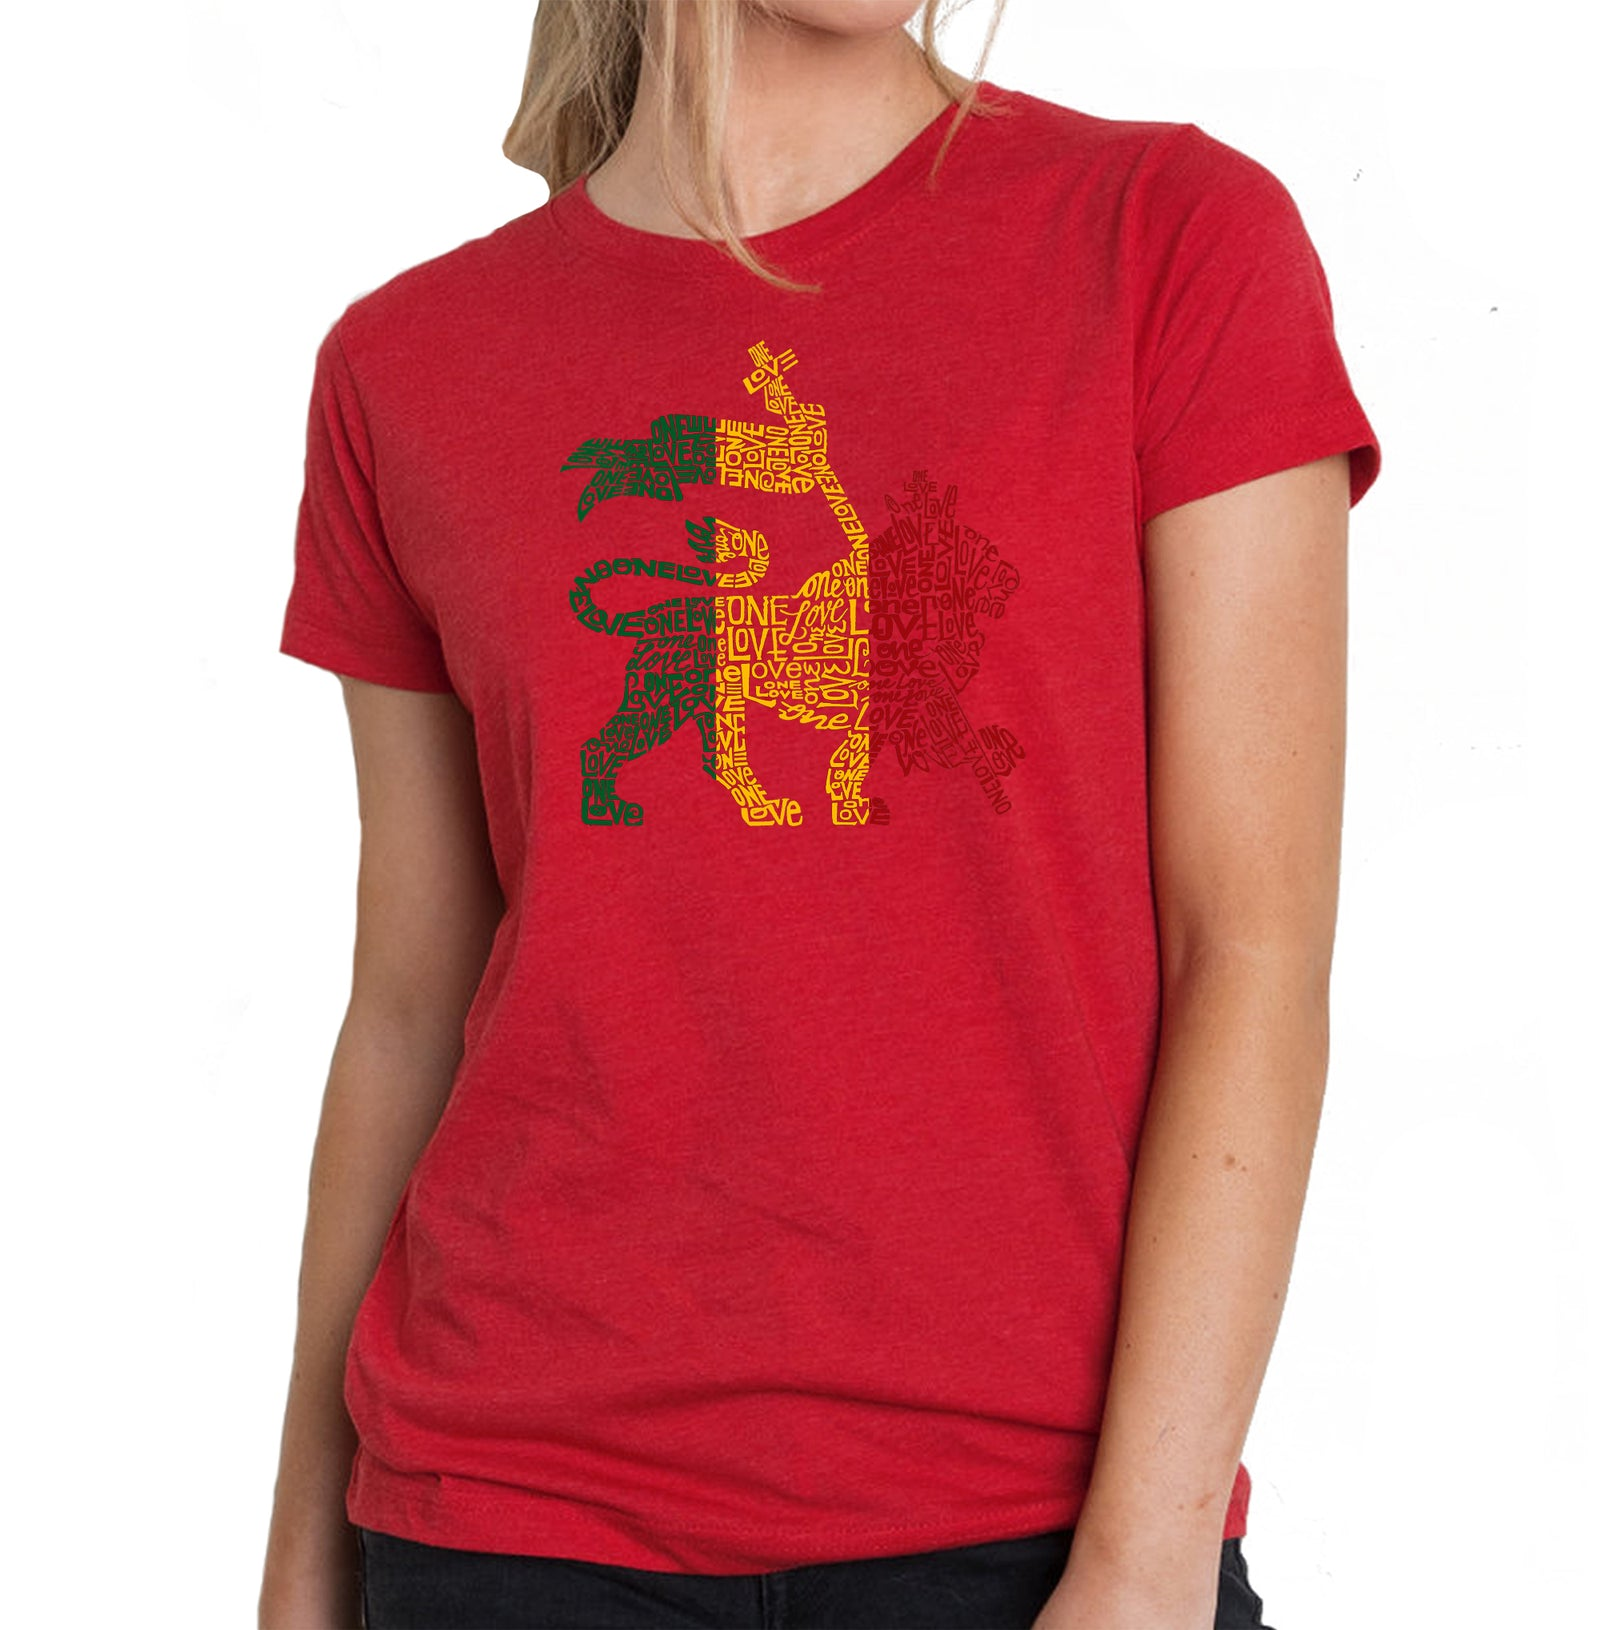 Women's Premium Blend Word Art T-shirt - Rasta Lion - One Love